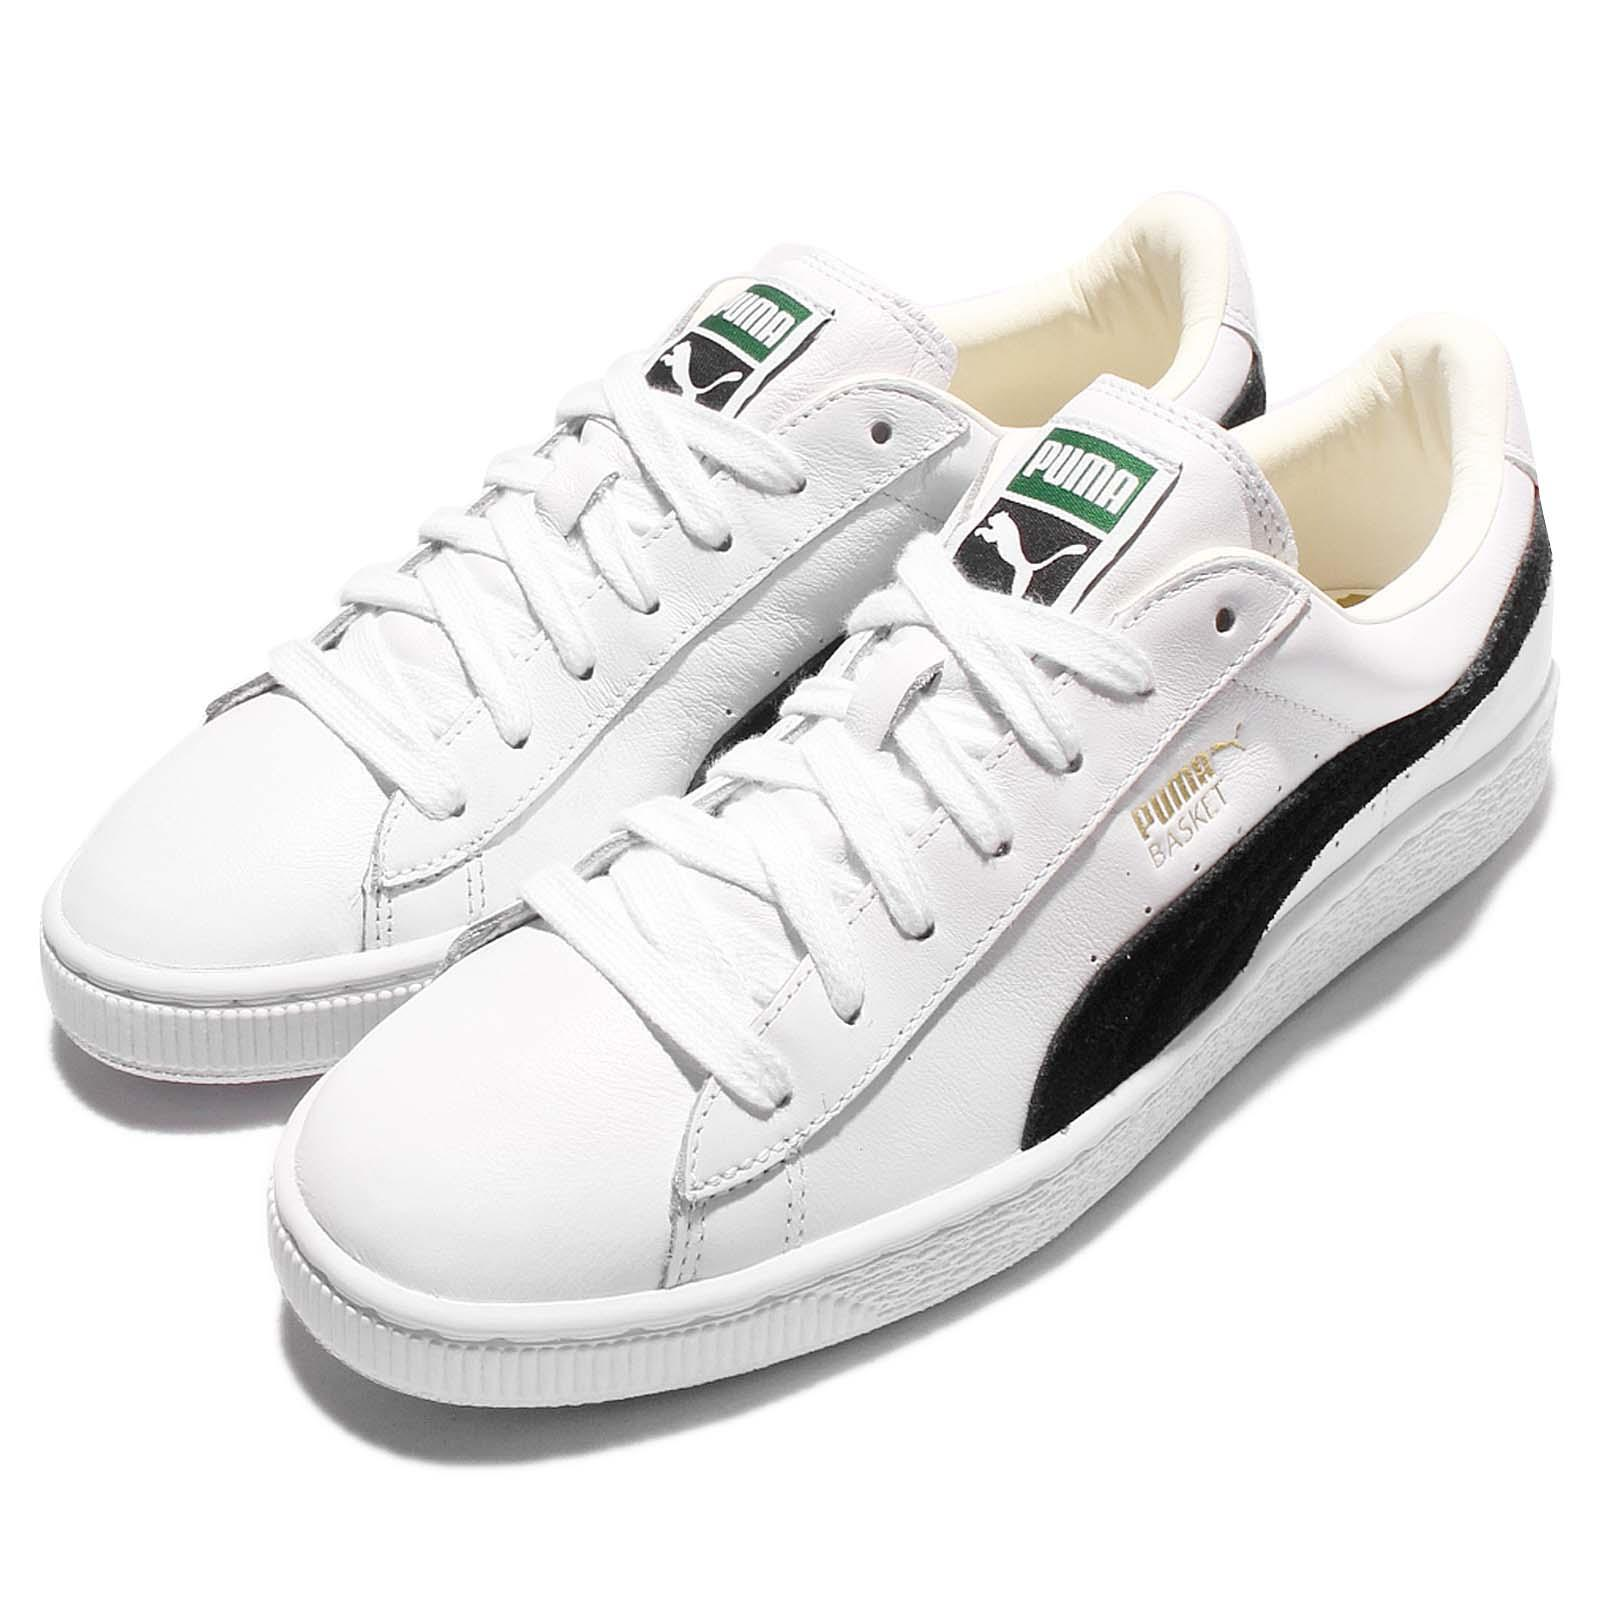 Détails sur Puma Basket Classic White Black Mens Casual Shoes Sneakers Trainers 351912 03